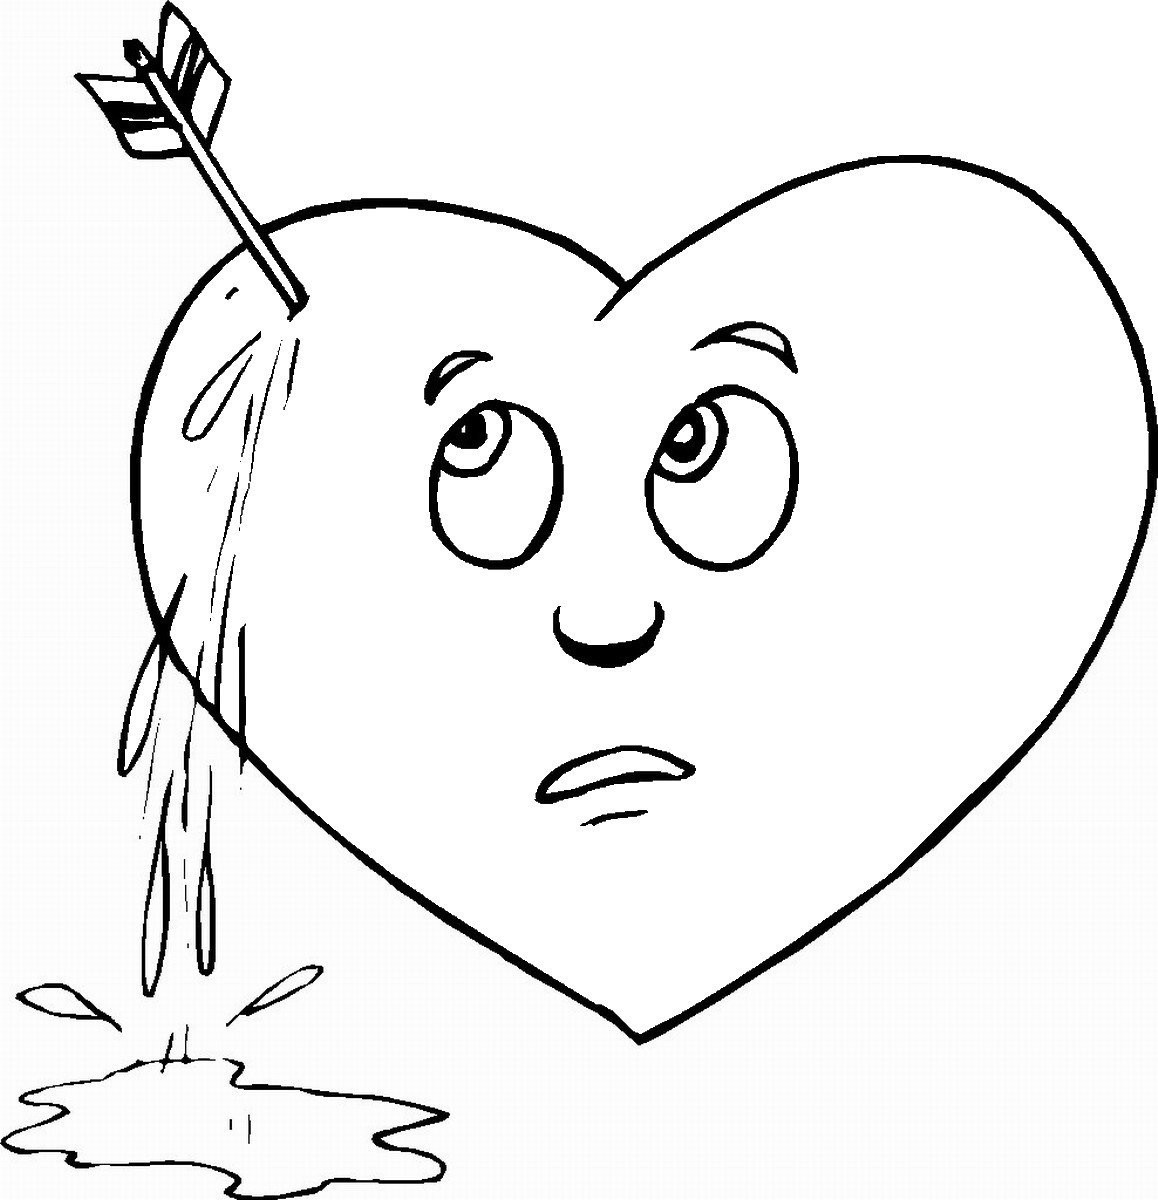 Heart Coloring Worksheet Hearts Coloring Pages